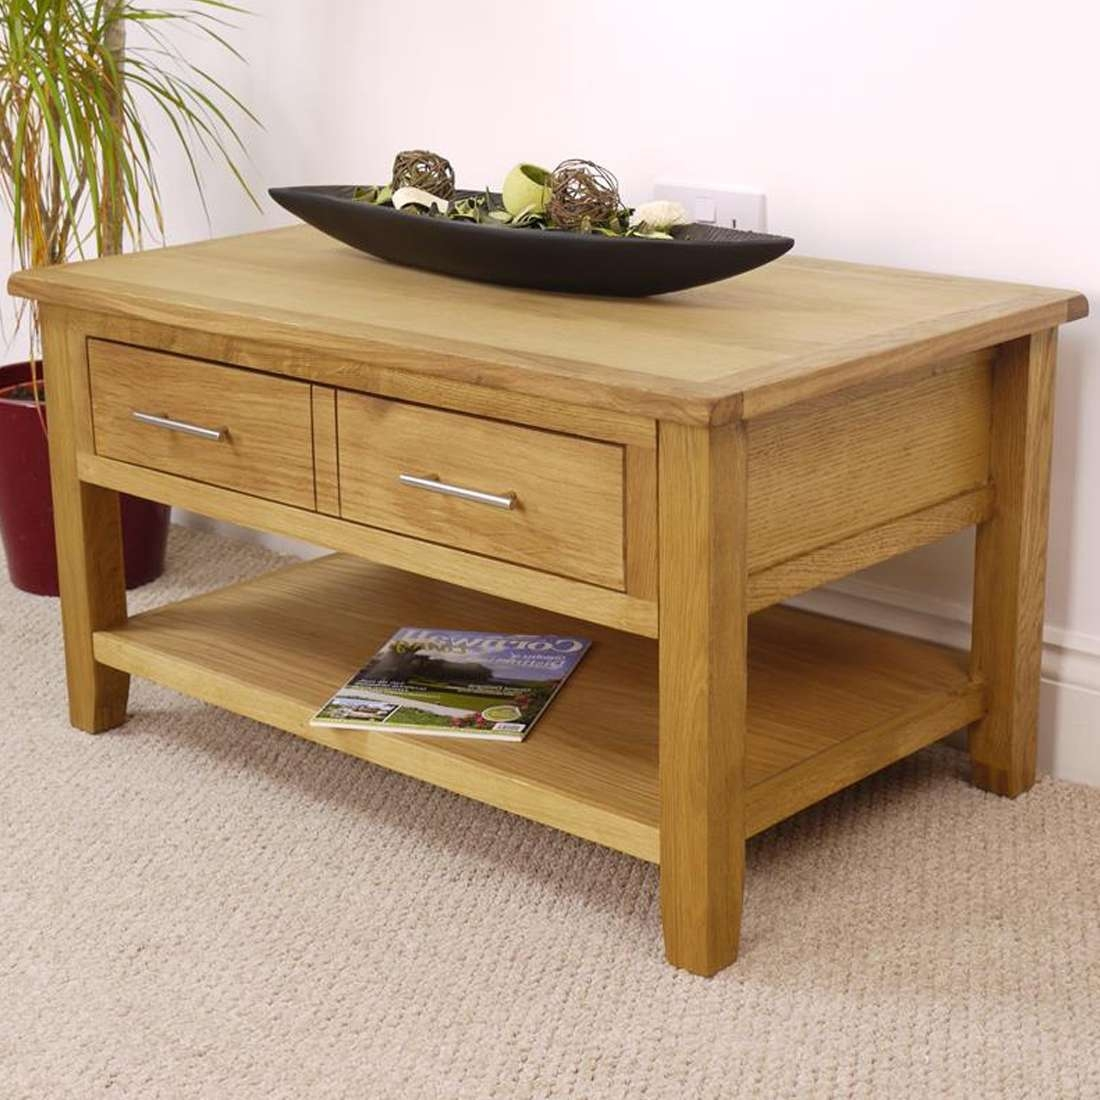 Image Gallery Of Oak Coffee Tables With Shelf View Of Photos - Oak coffee table with drawers and shelf